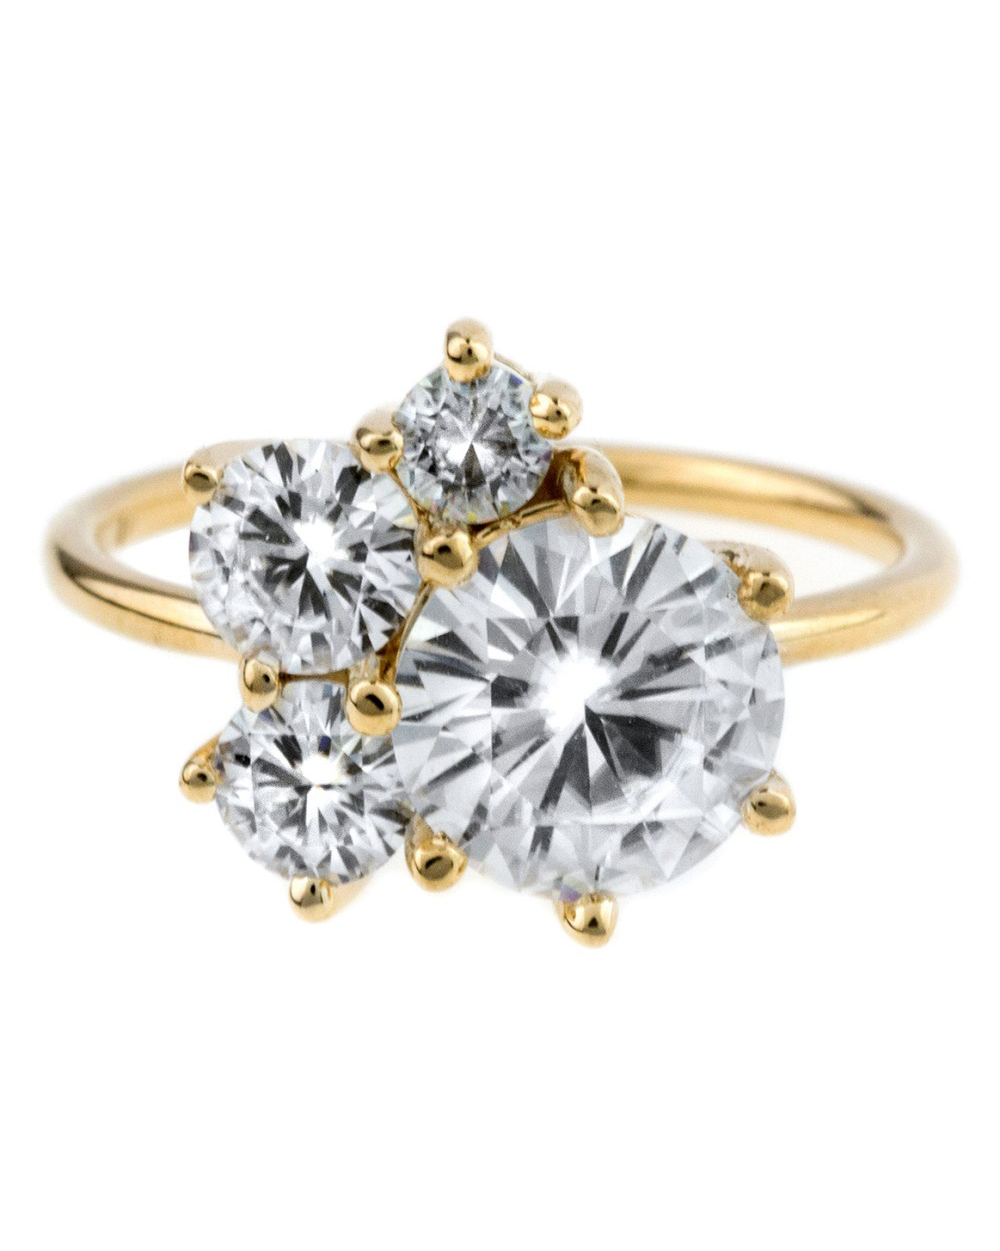 Bario Neal Custom Moissanite Cluster Ring